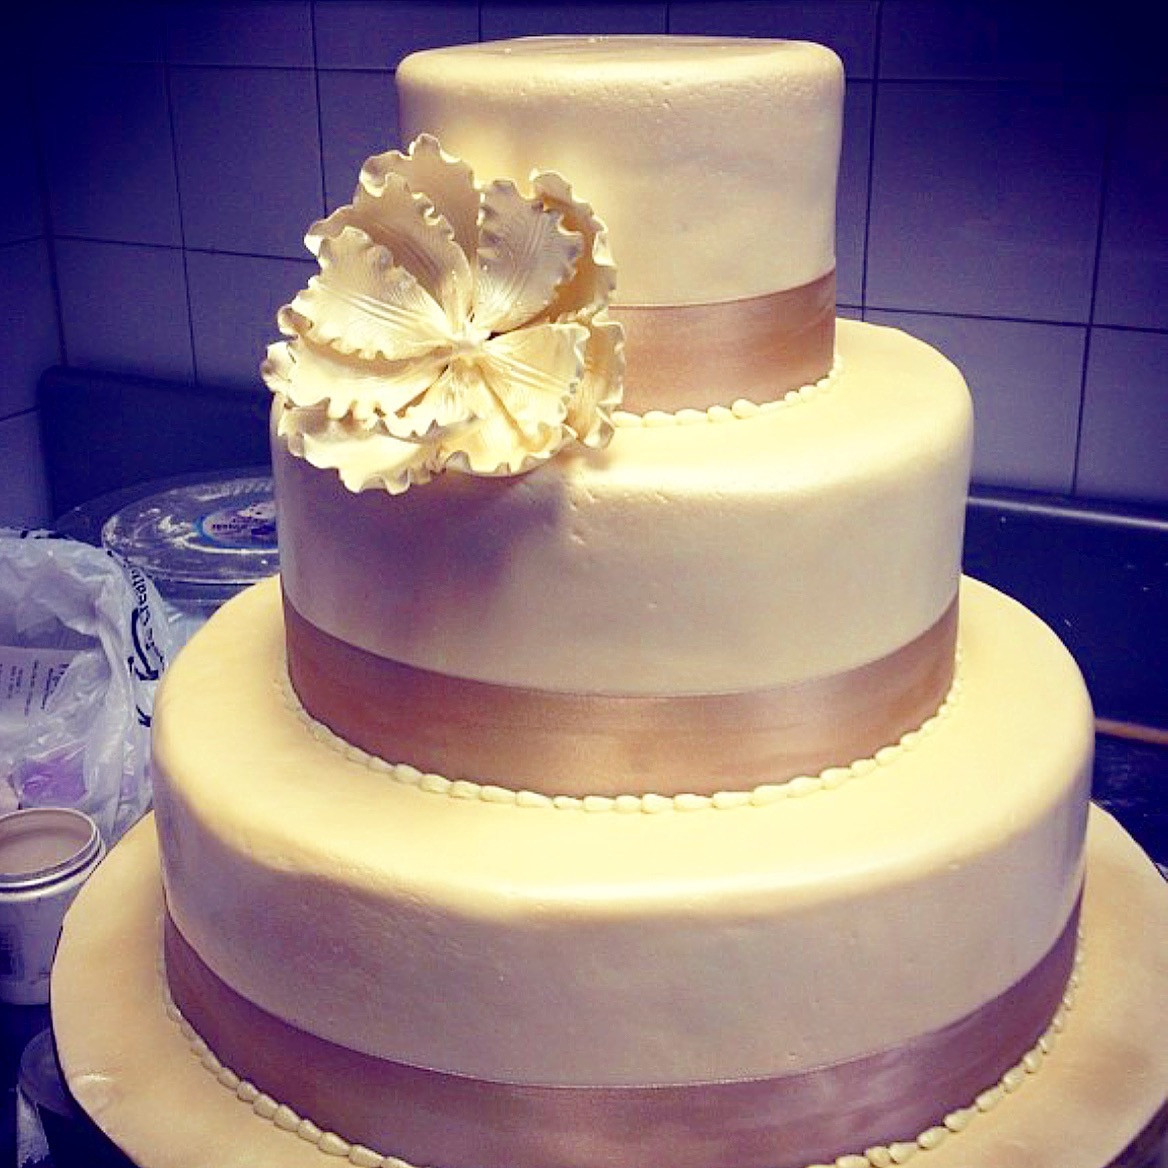 Wedding Cakes from Rustika Cafe and Bakery